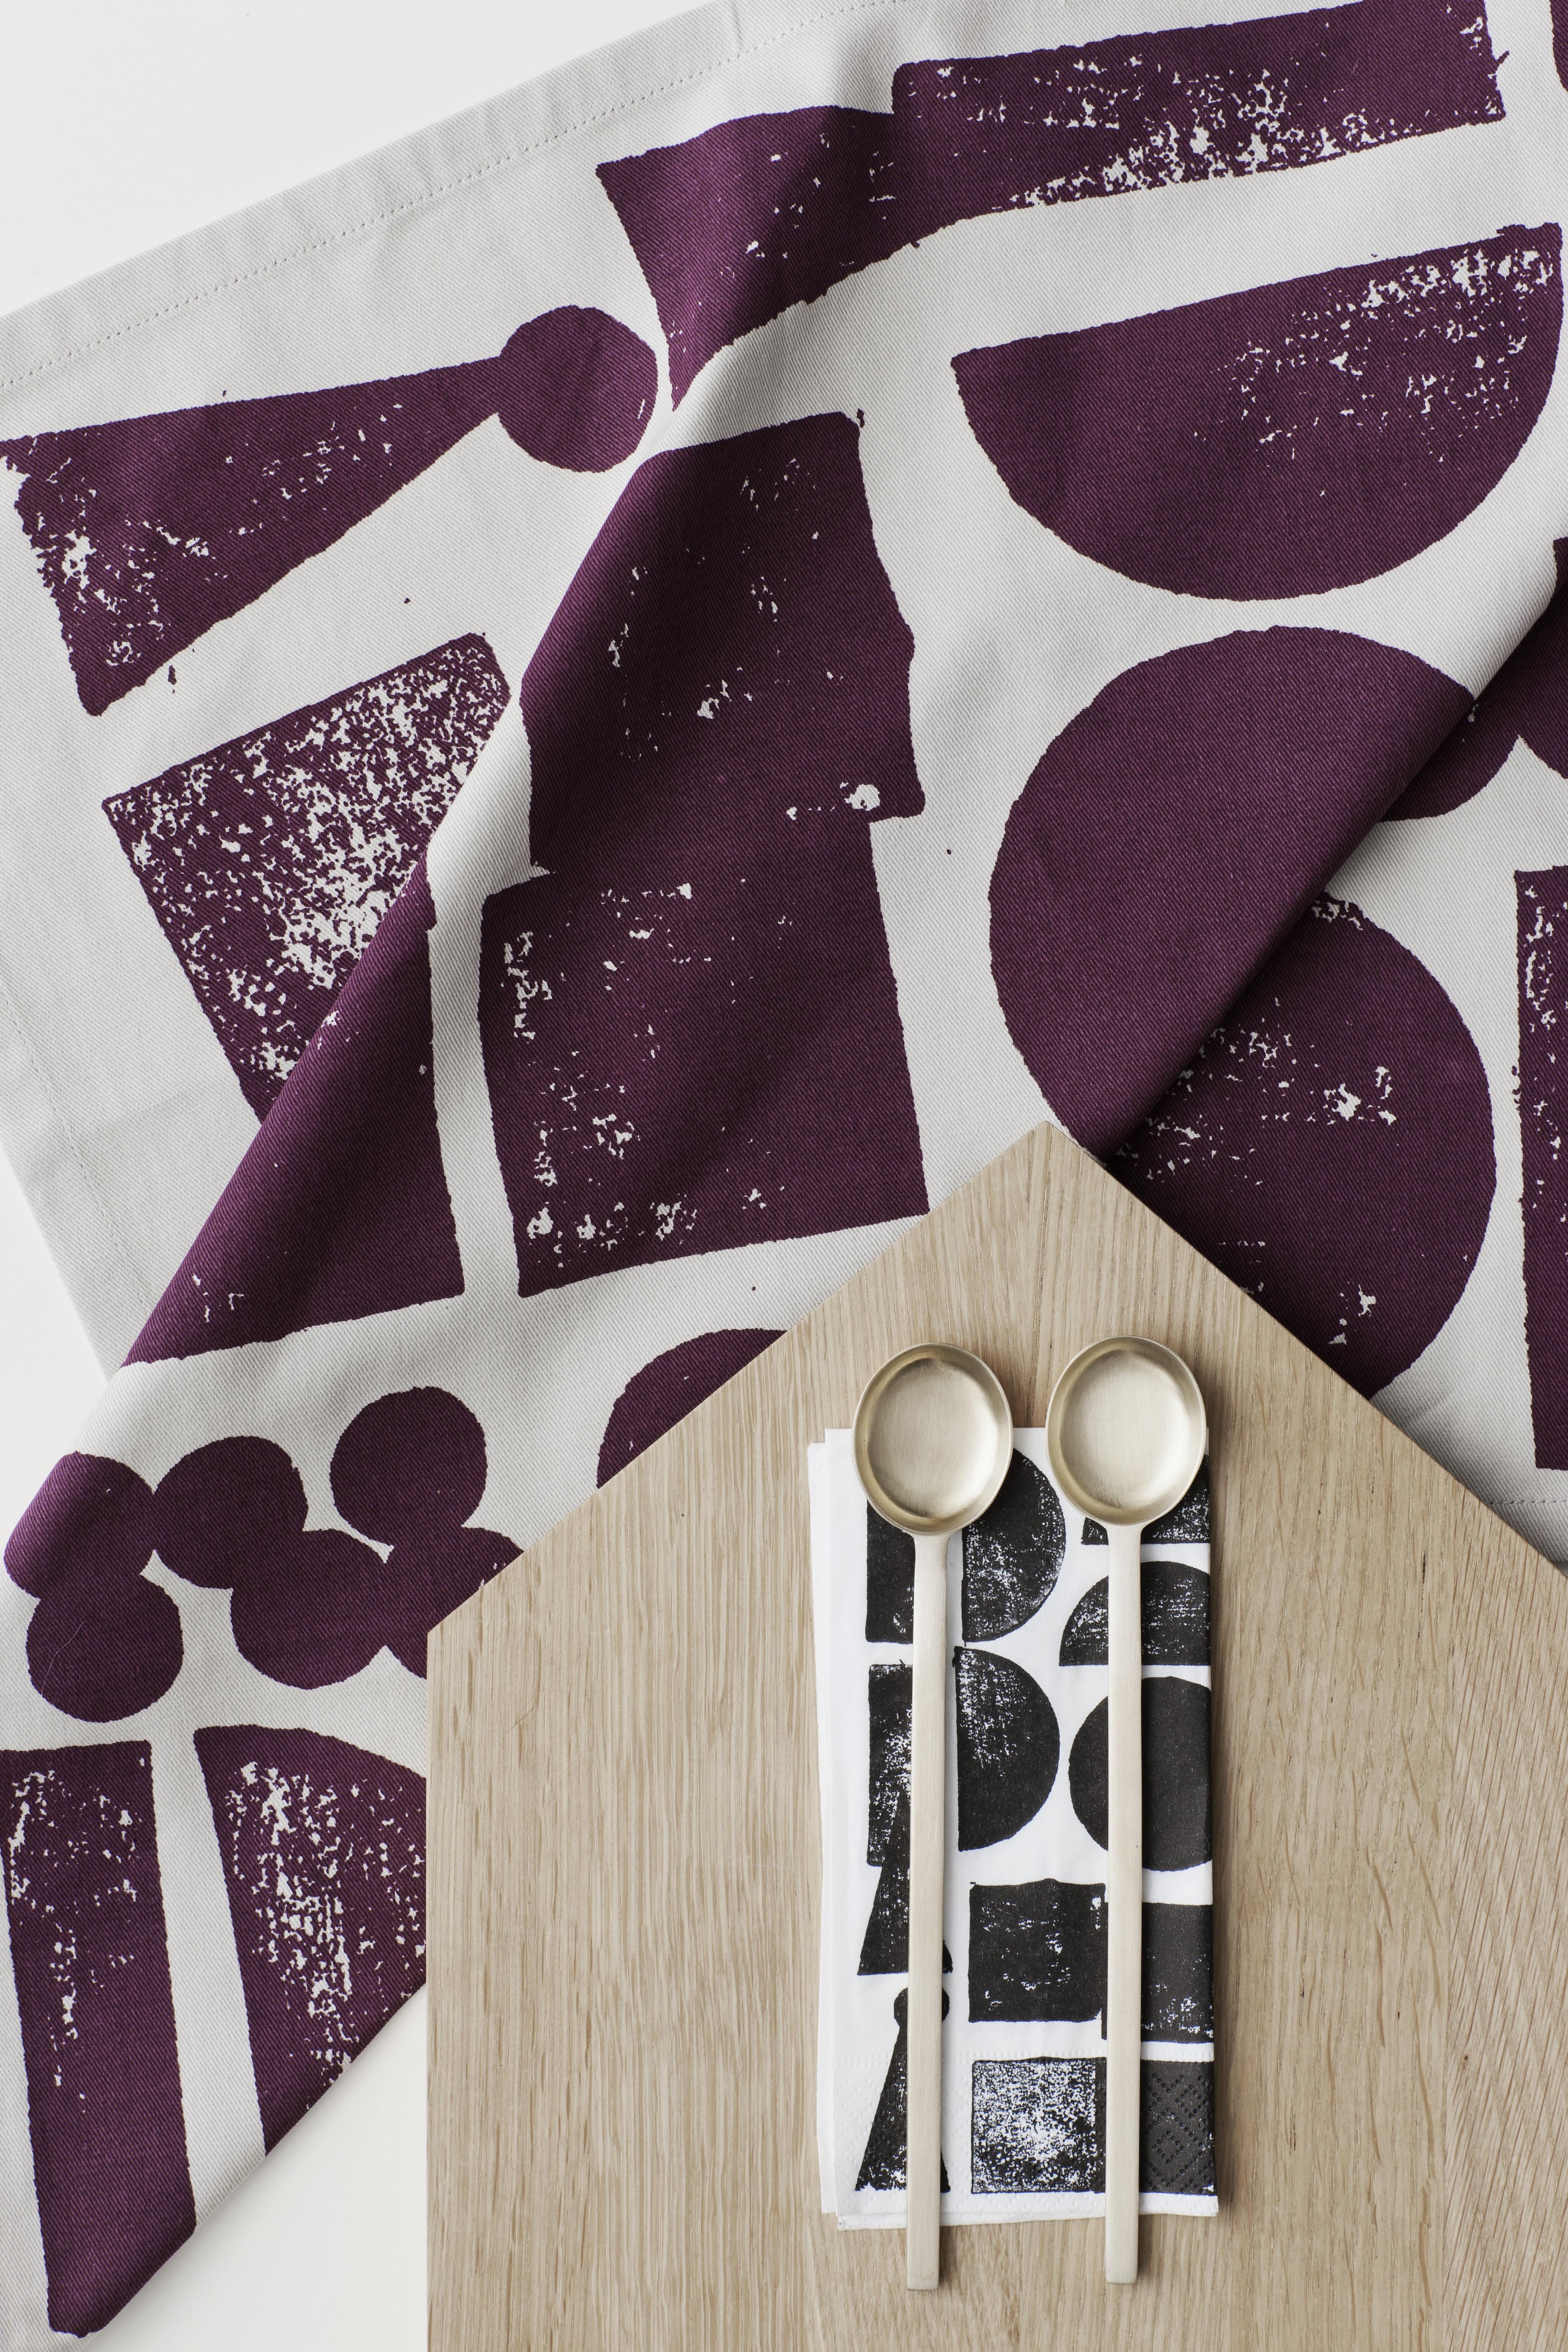 Ferm Living New Spring Summer 2015 Collection Cate Hill